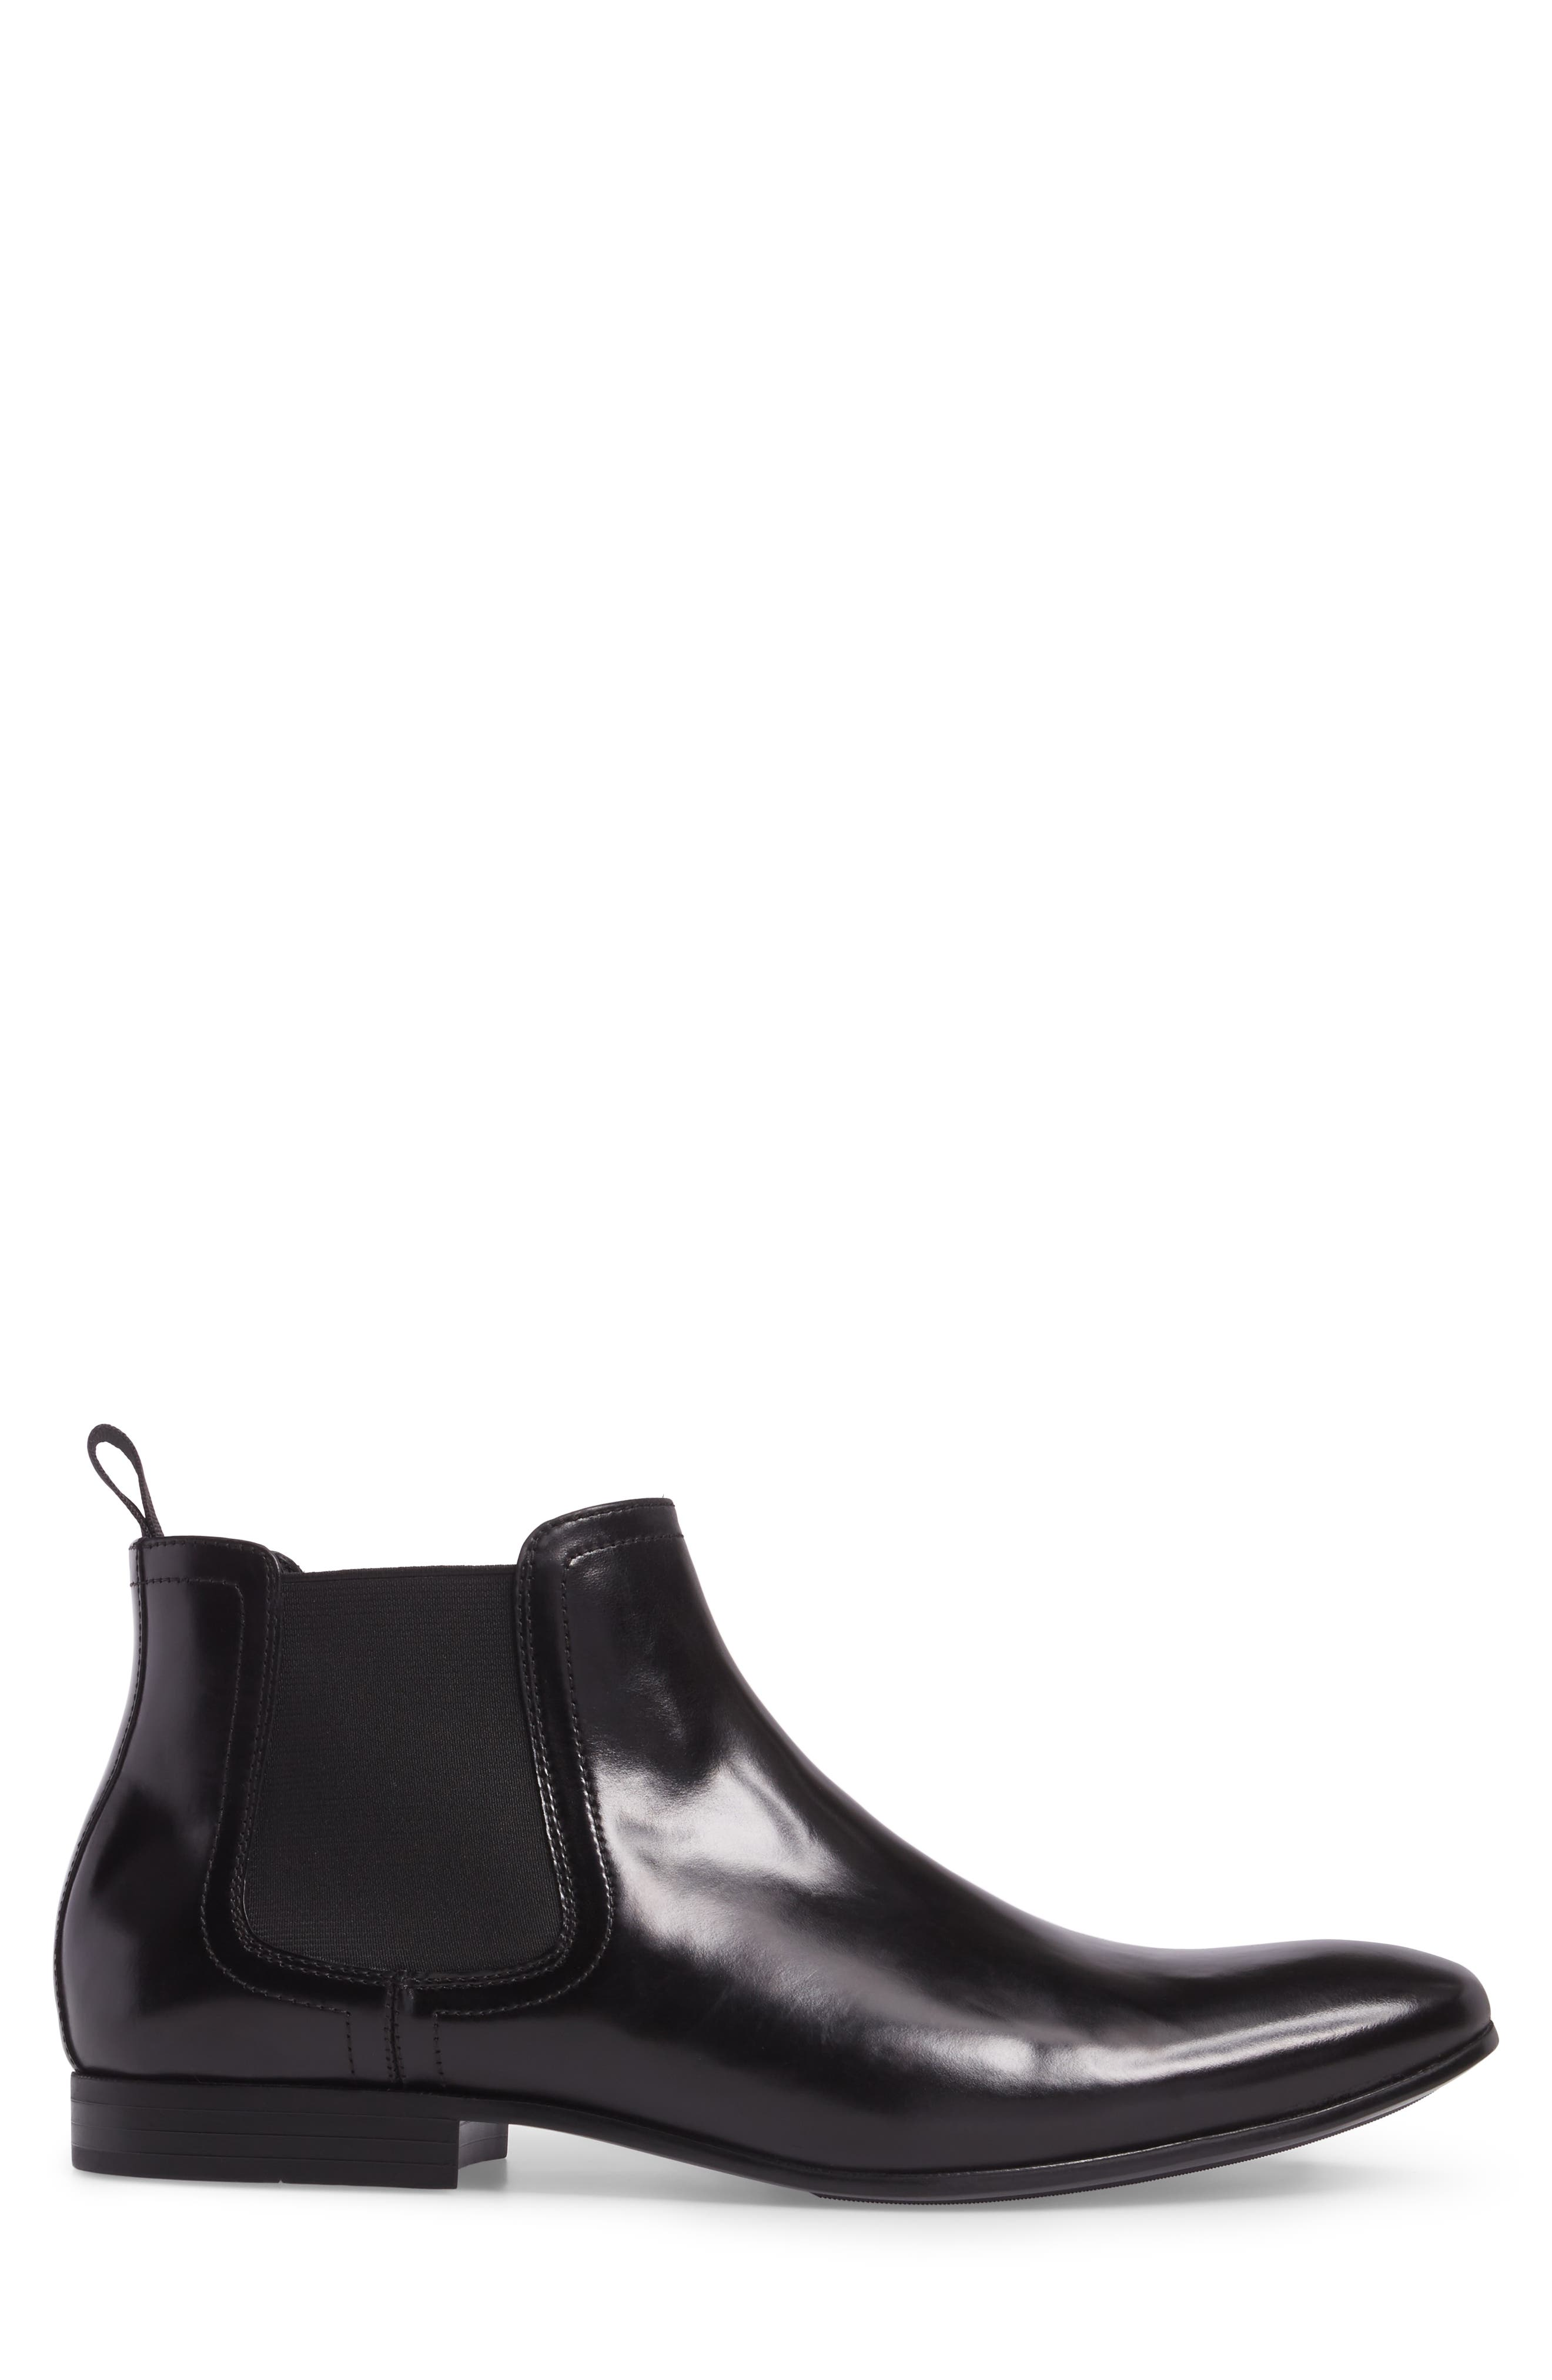 Chelsea Boot,                             Alternate thumbnail 3, color,                             Black Leather